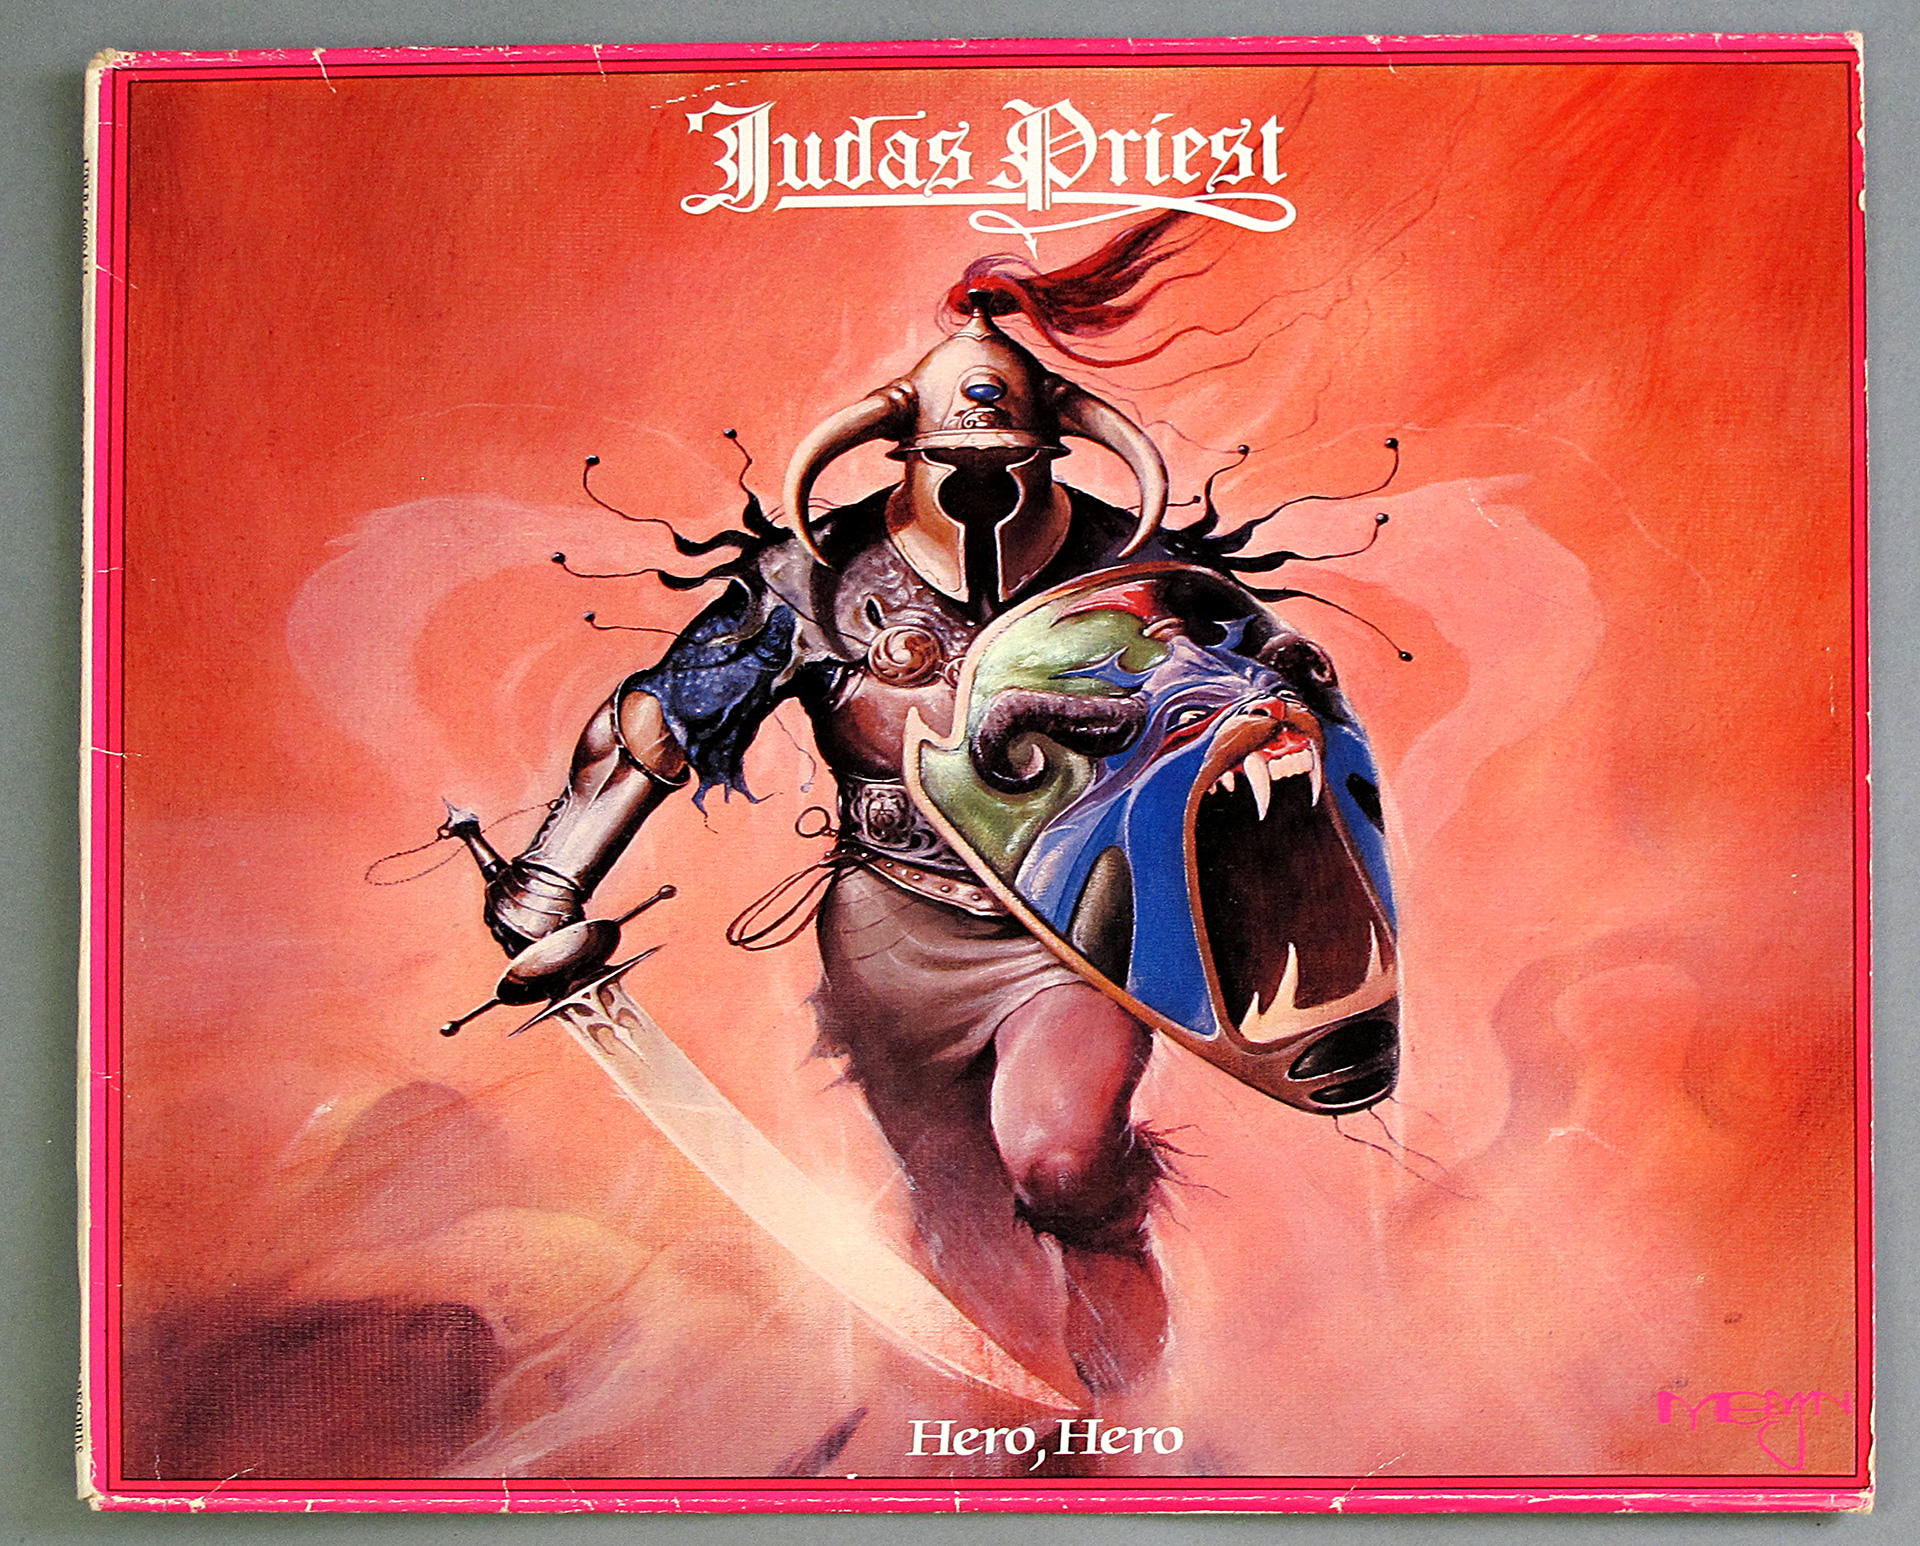 "JUDAS PRIEST HERO, HERO WHITE VINYL 2LP 12"" DOUBLE LP VINYL"